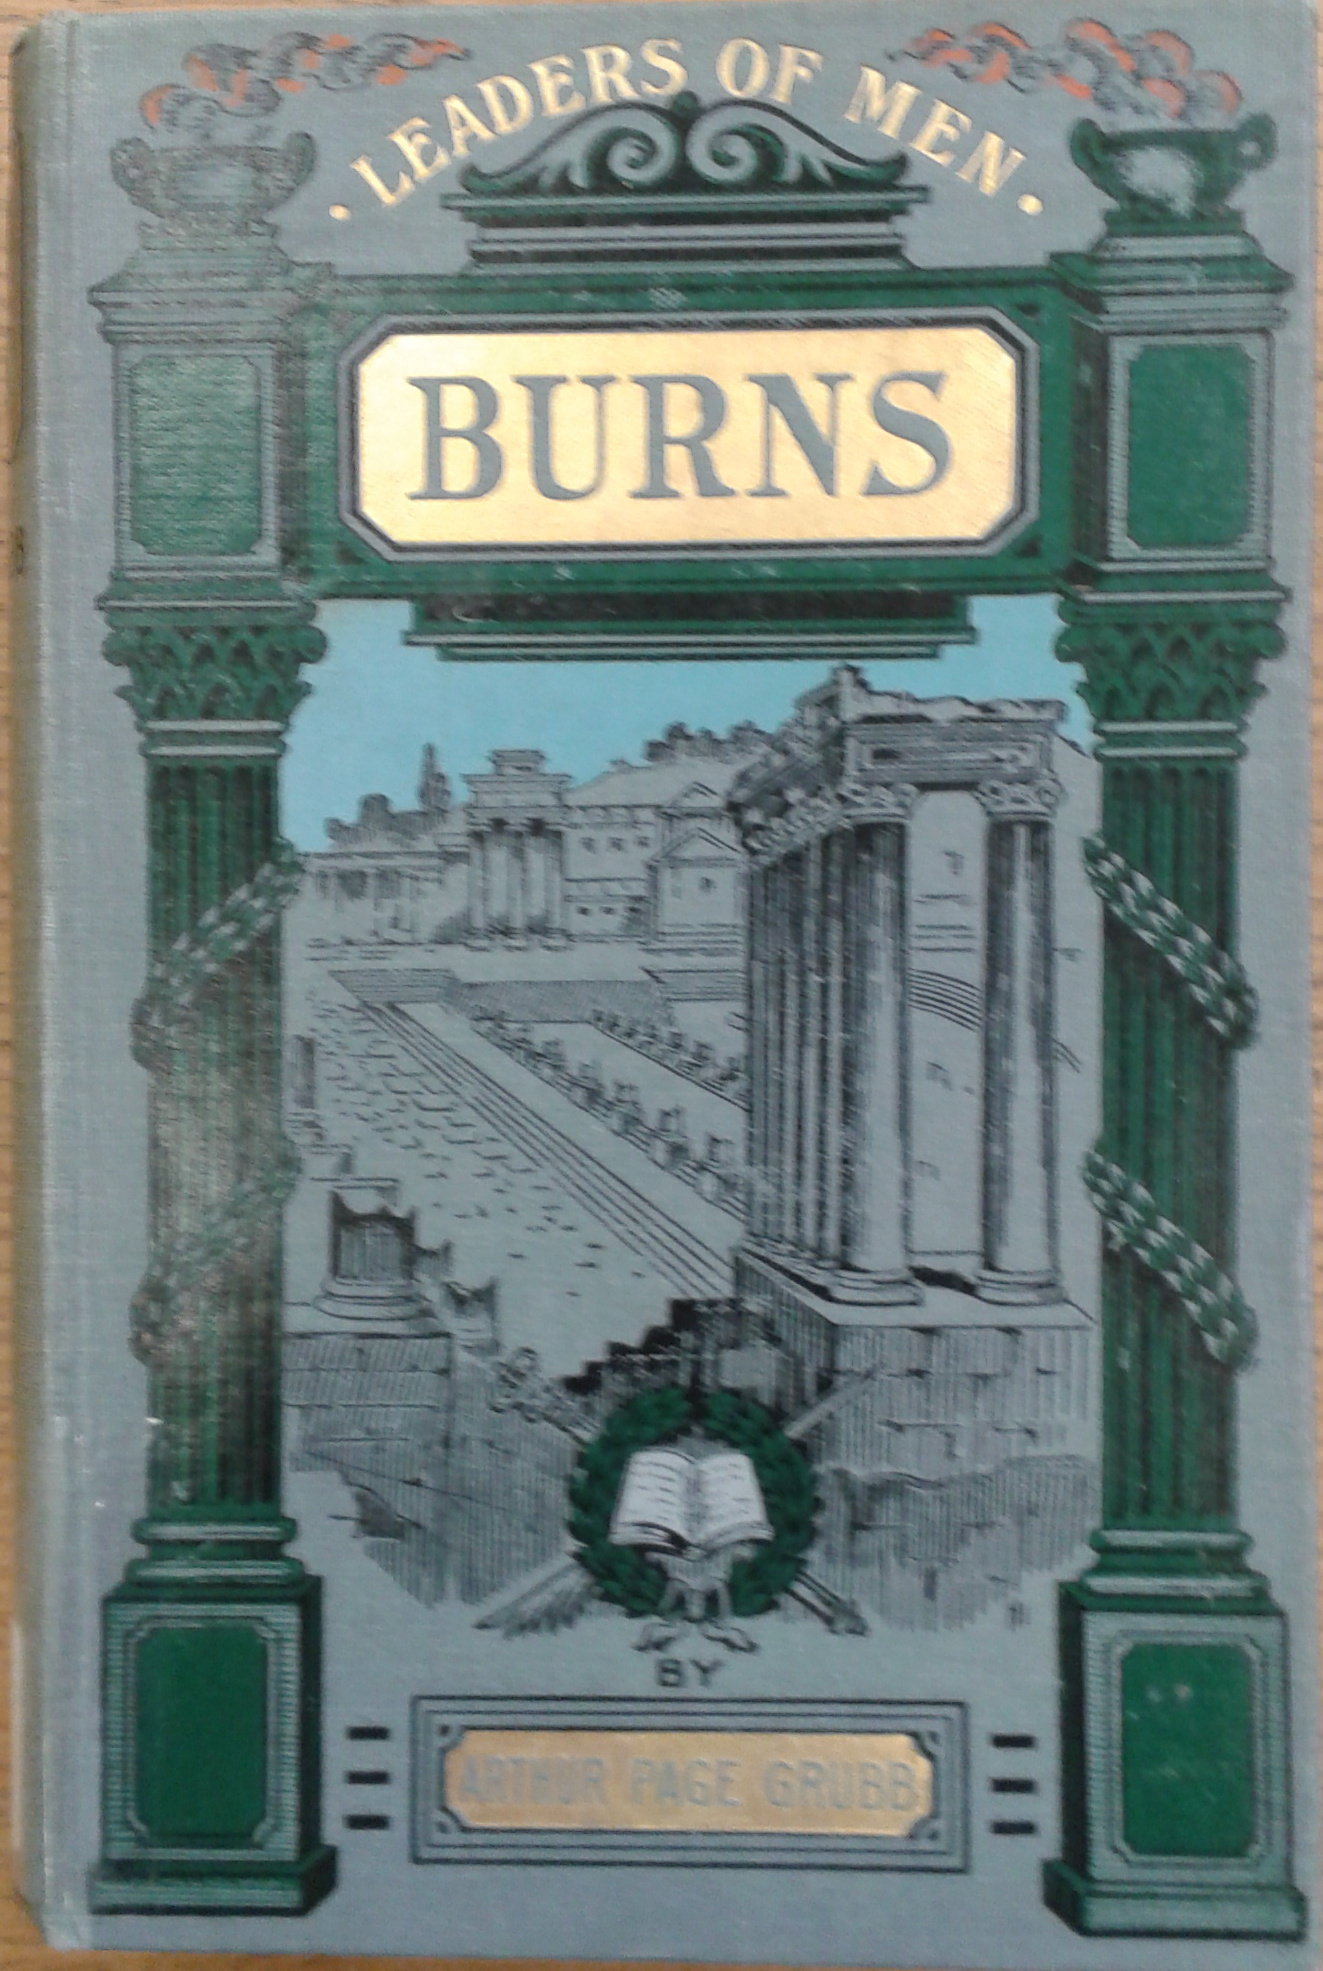 Burns book cover